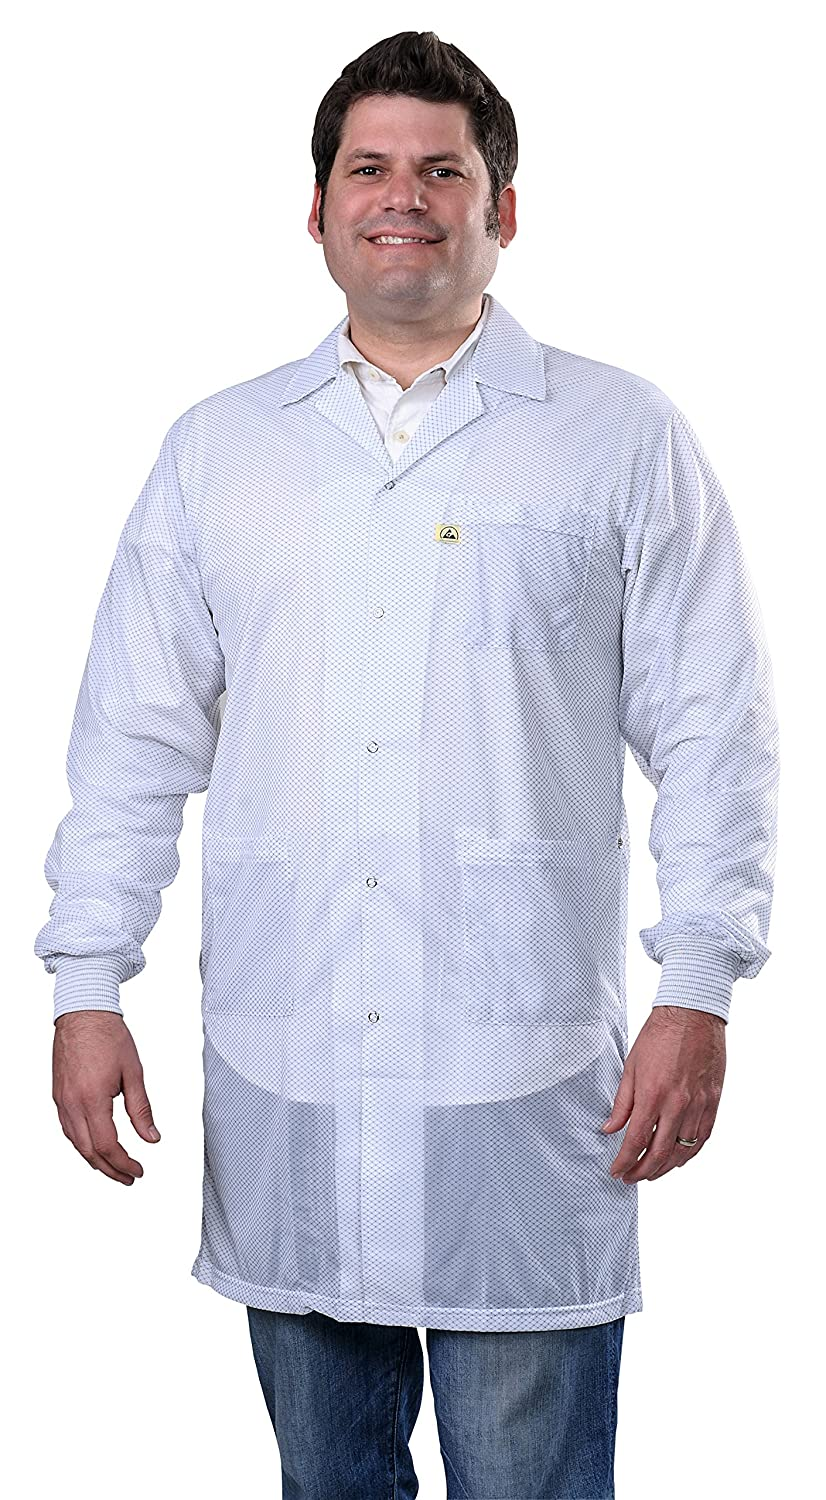 DESCO 73639 Smock Statshield Labcoat with Cuffs 42 Length 6X-Large White